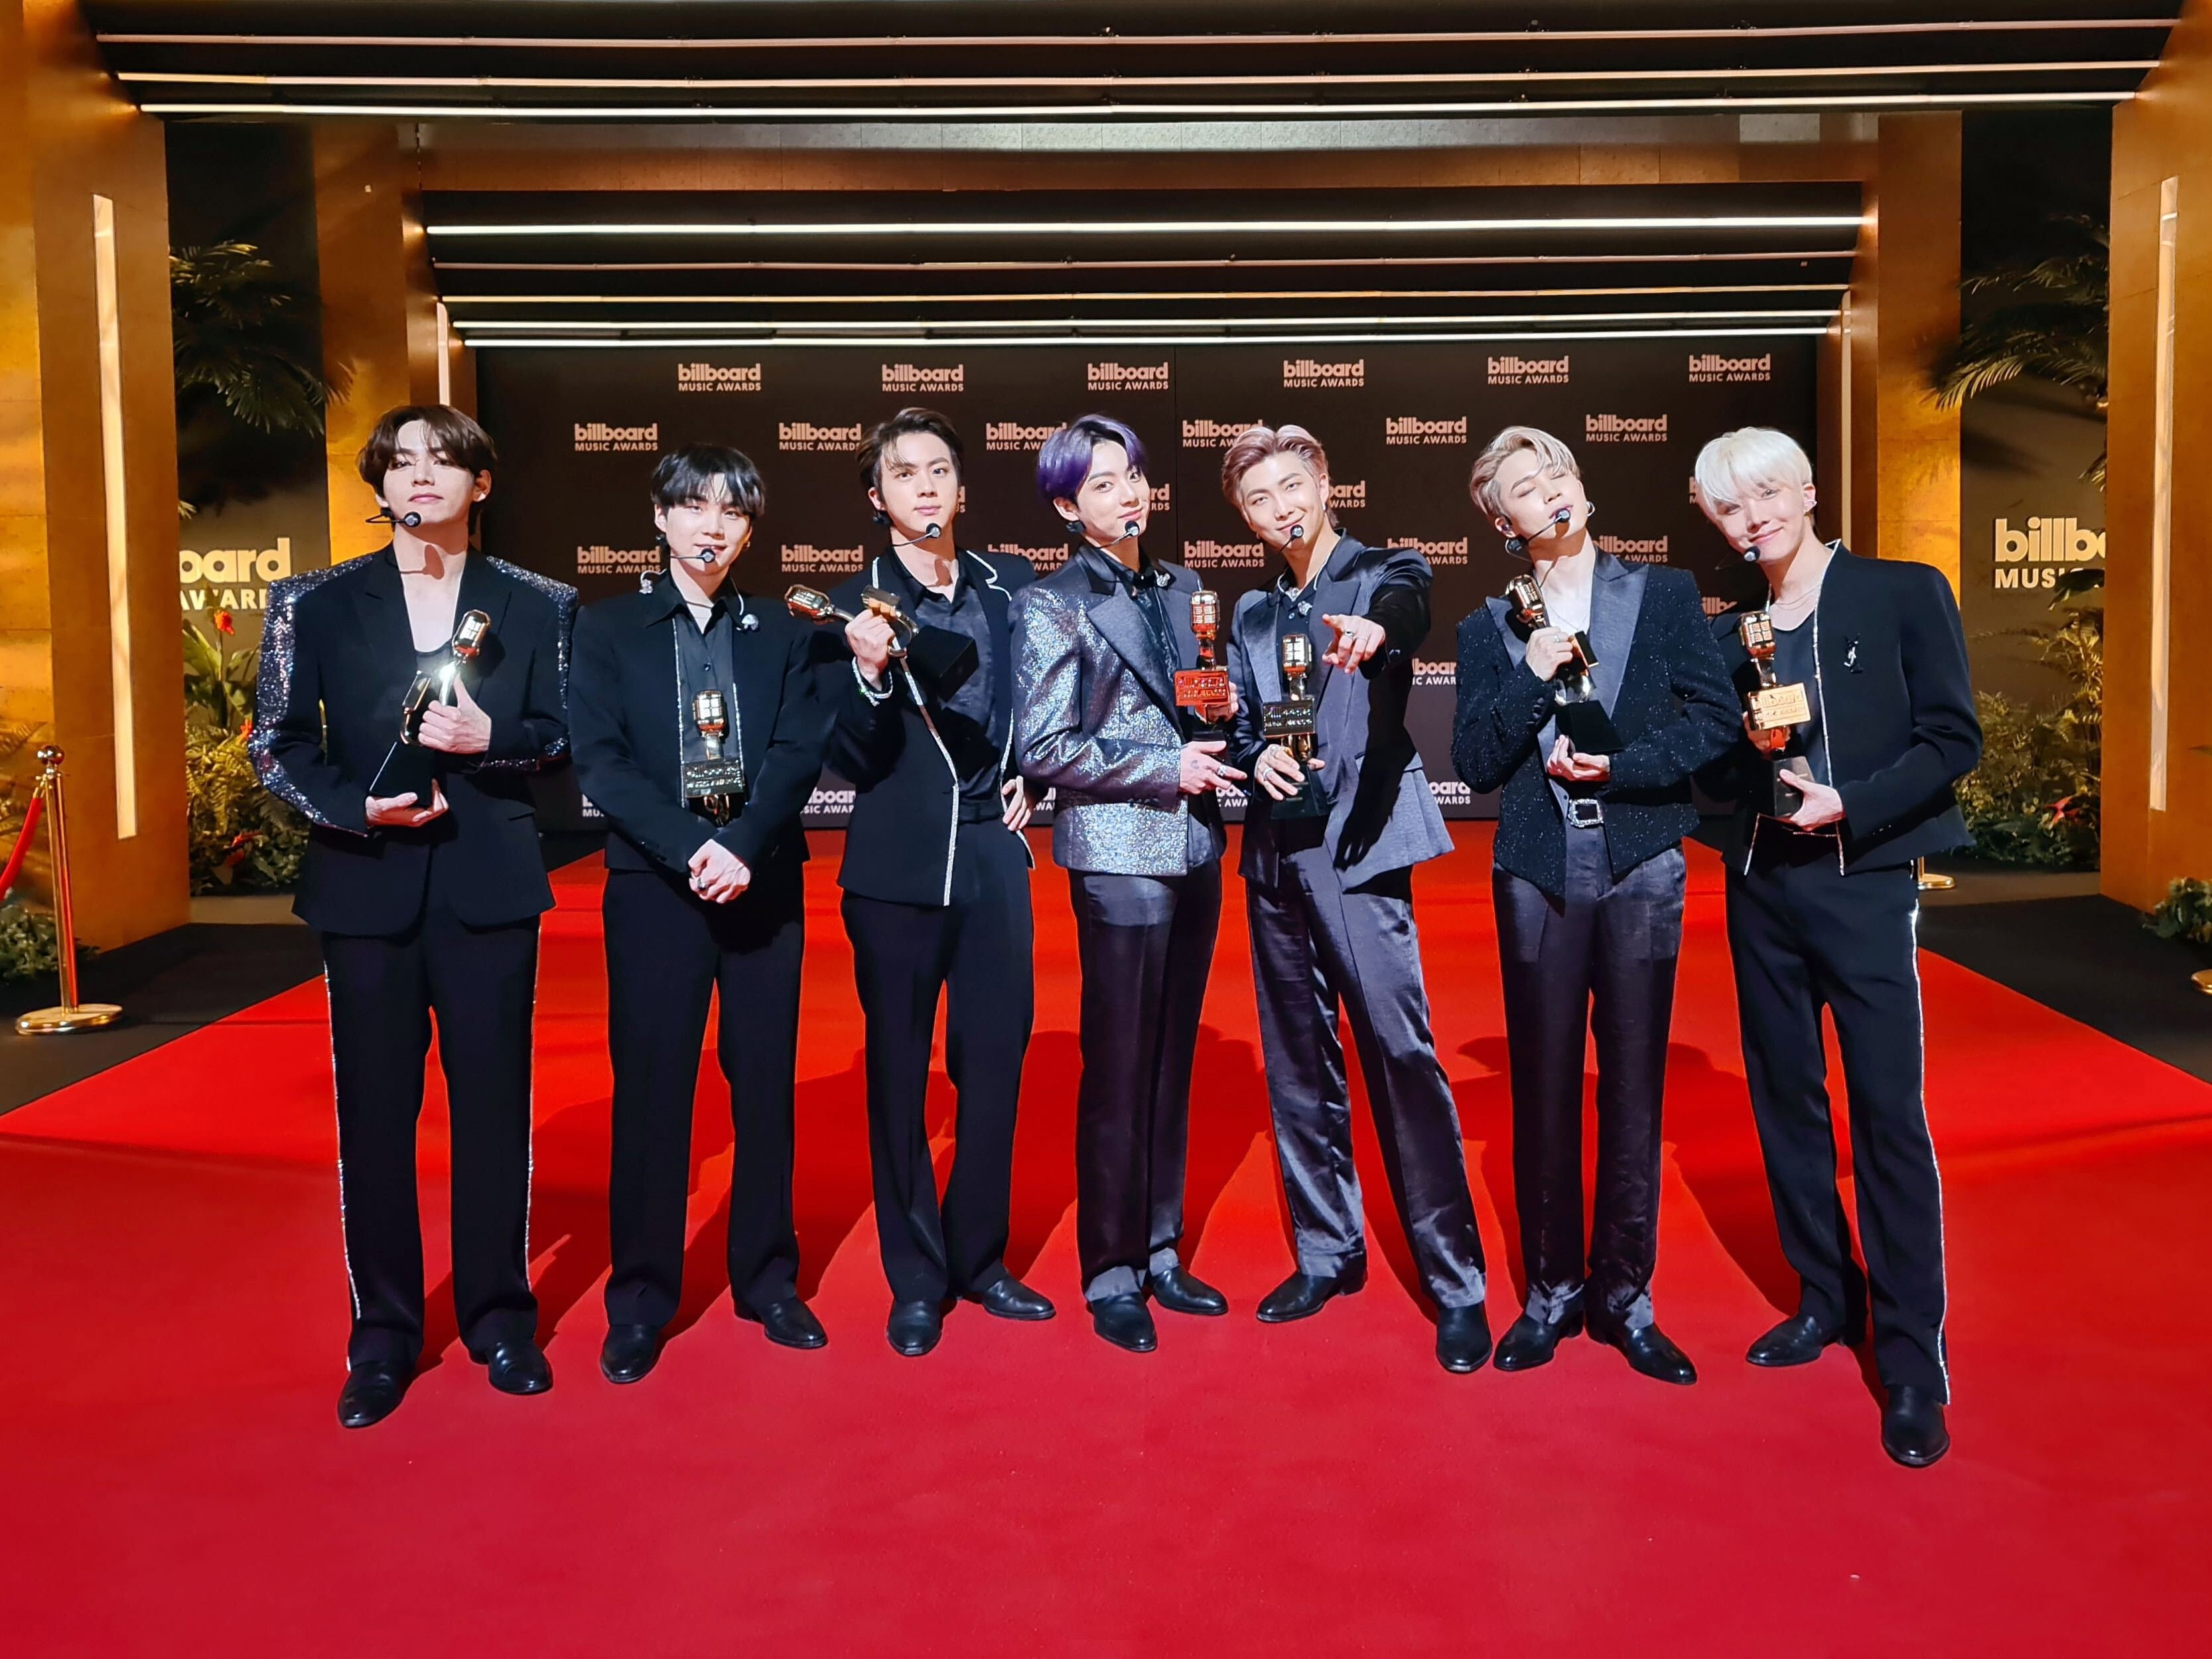 Seven members of BTS on the red carpet at the Billboard Music Awards 2021;  They are aligned horizontally, each holding a prize in a bold dress